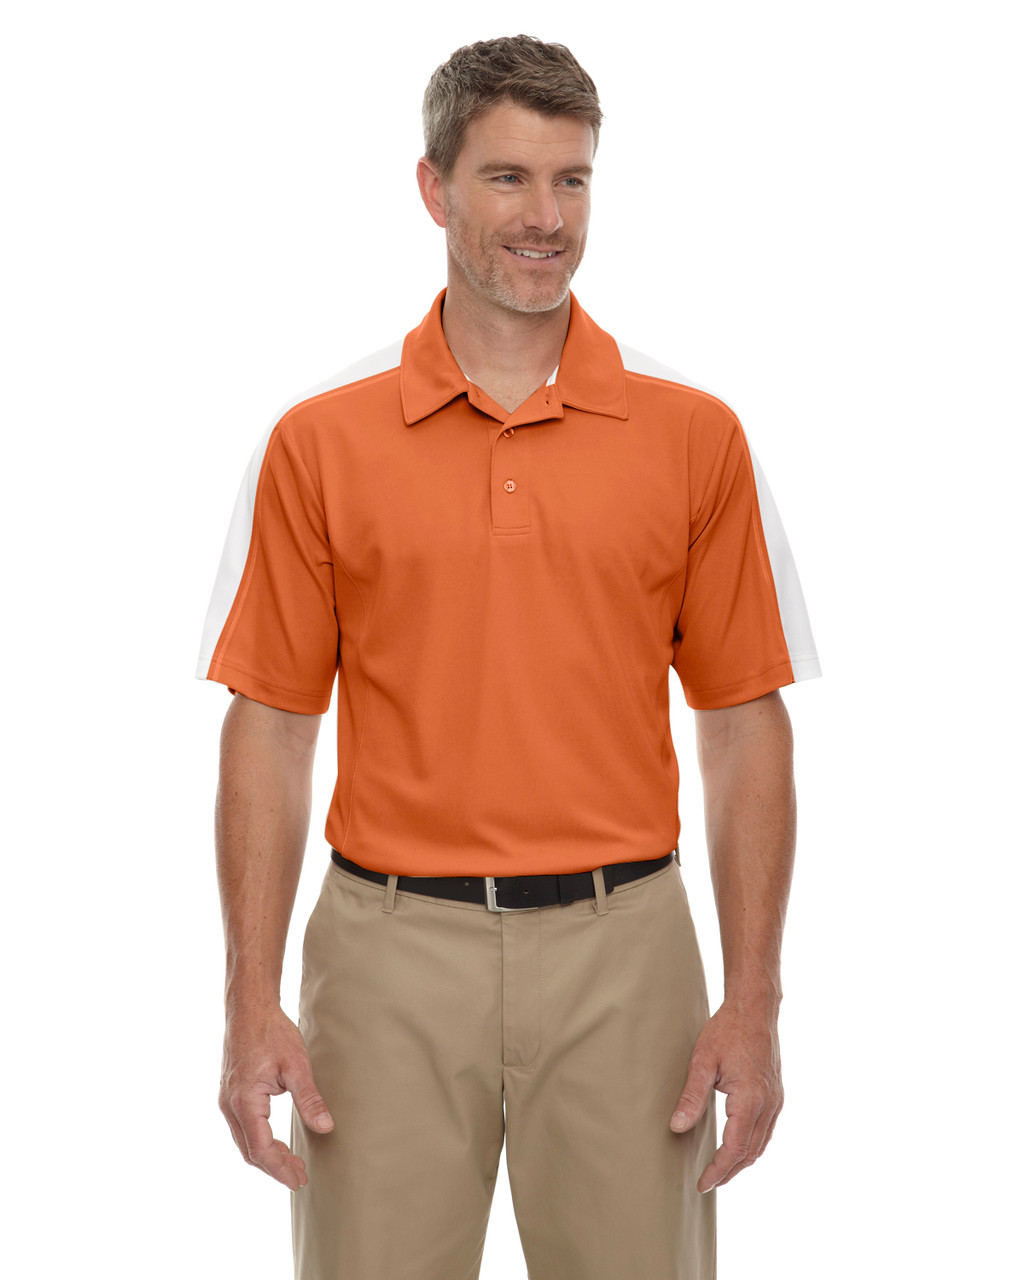 Hibiscus - 85089 Extreme Men's Eperformance Pique Color-Block Polo Shirt | BlankClothing.ca